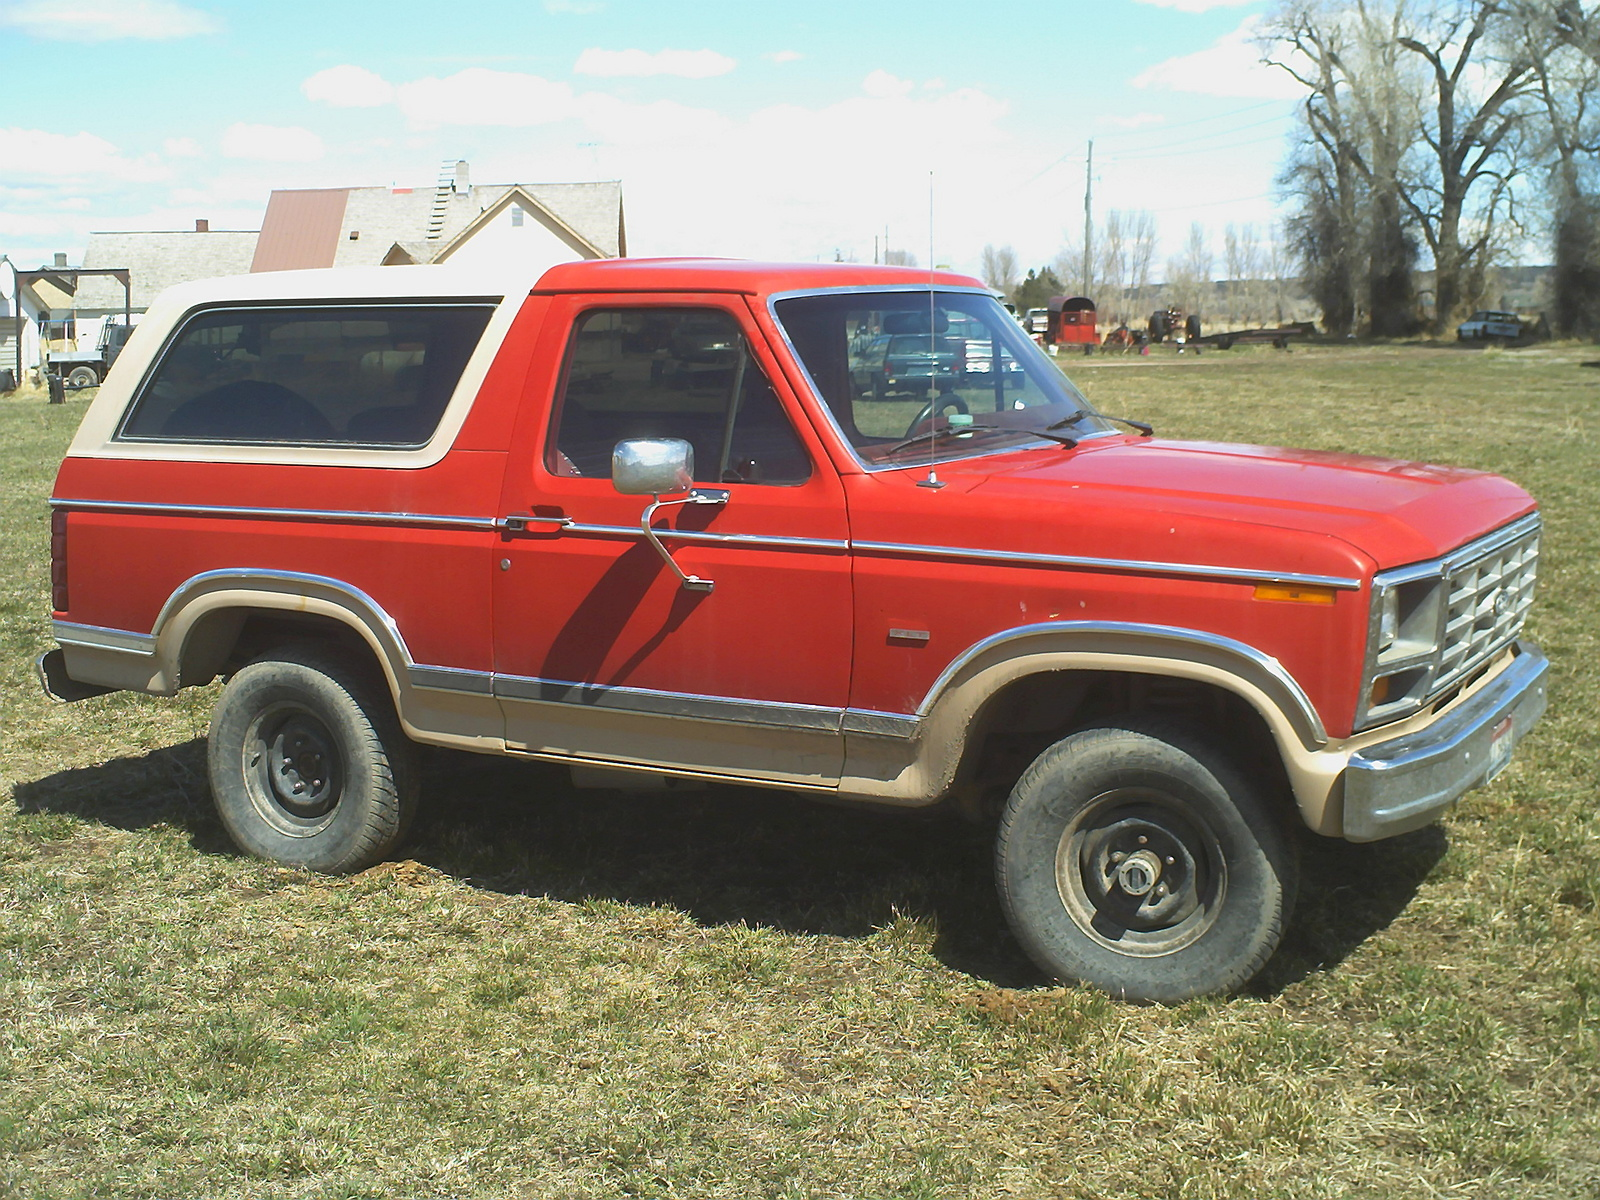 1982 F250 Wiring Diagram Ford Bronco Review Amazing Pictures And Images Look At The Car Photo 5